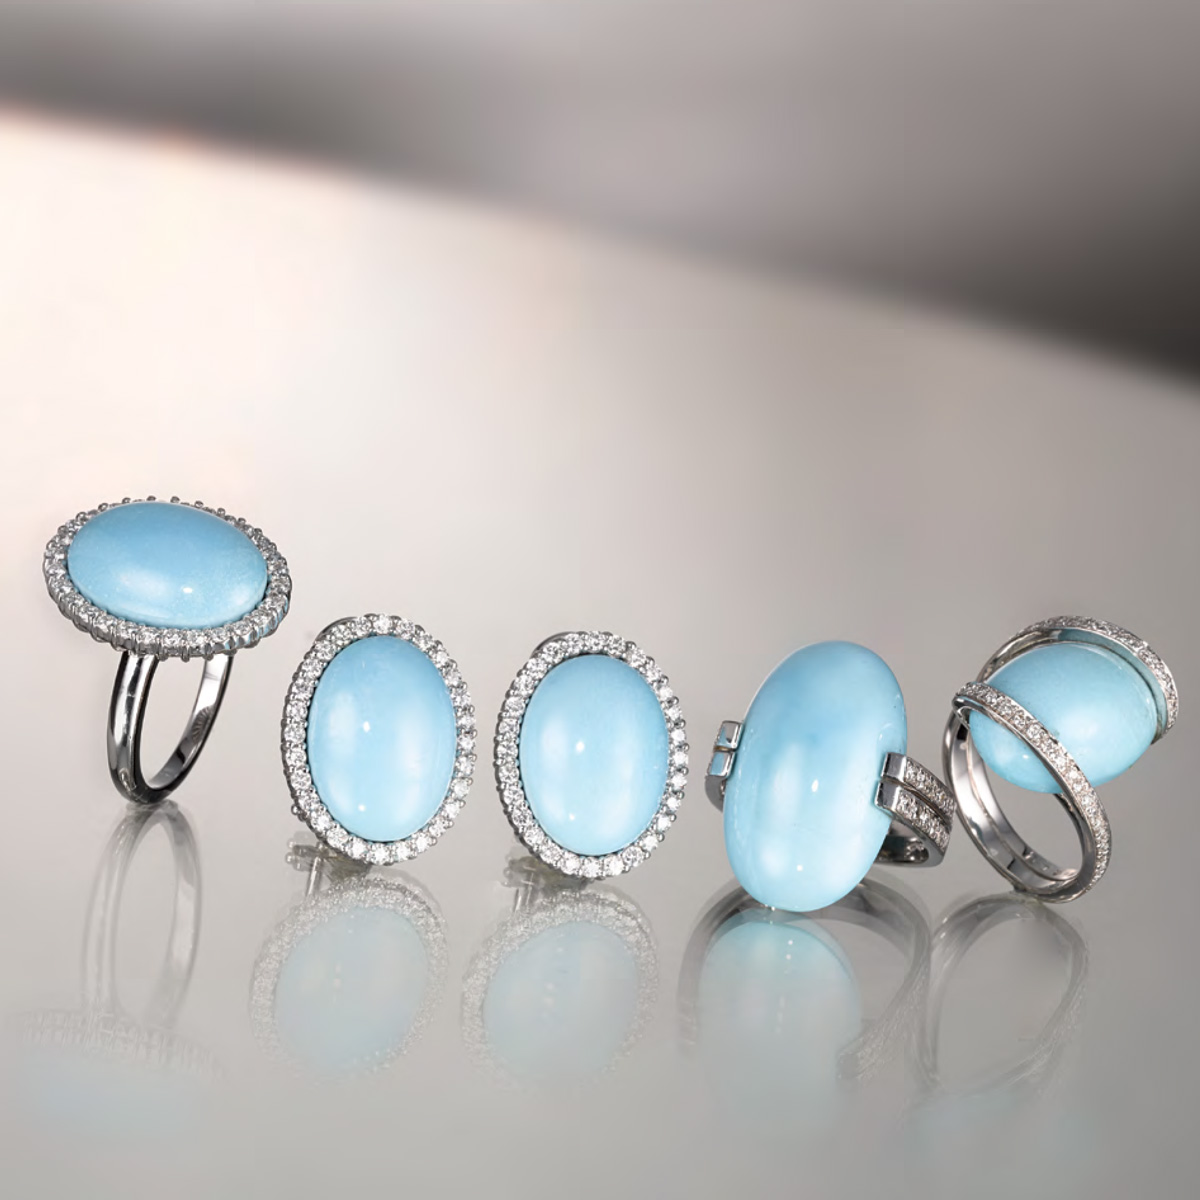 Anelli Turchese - Turquoise rings